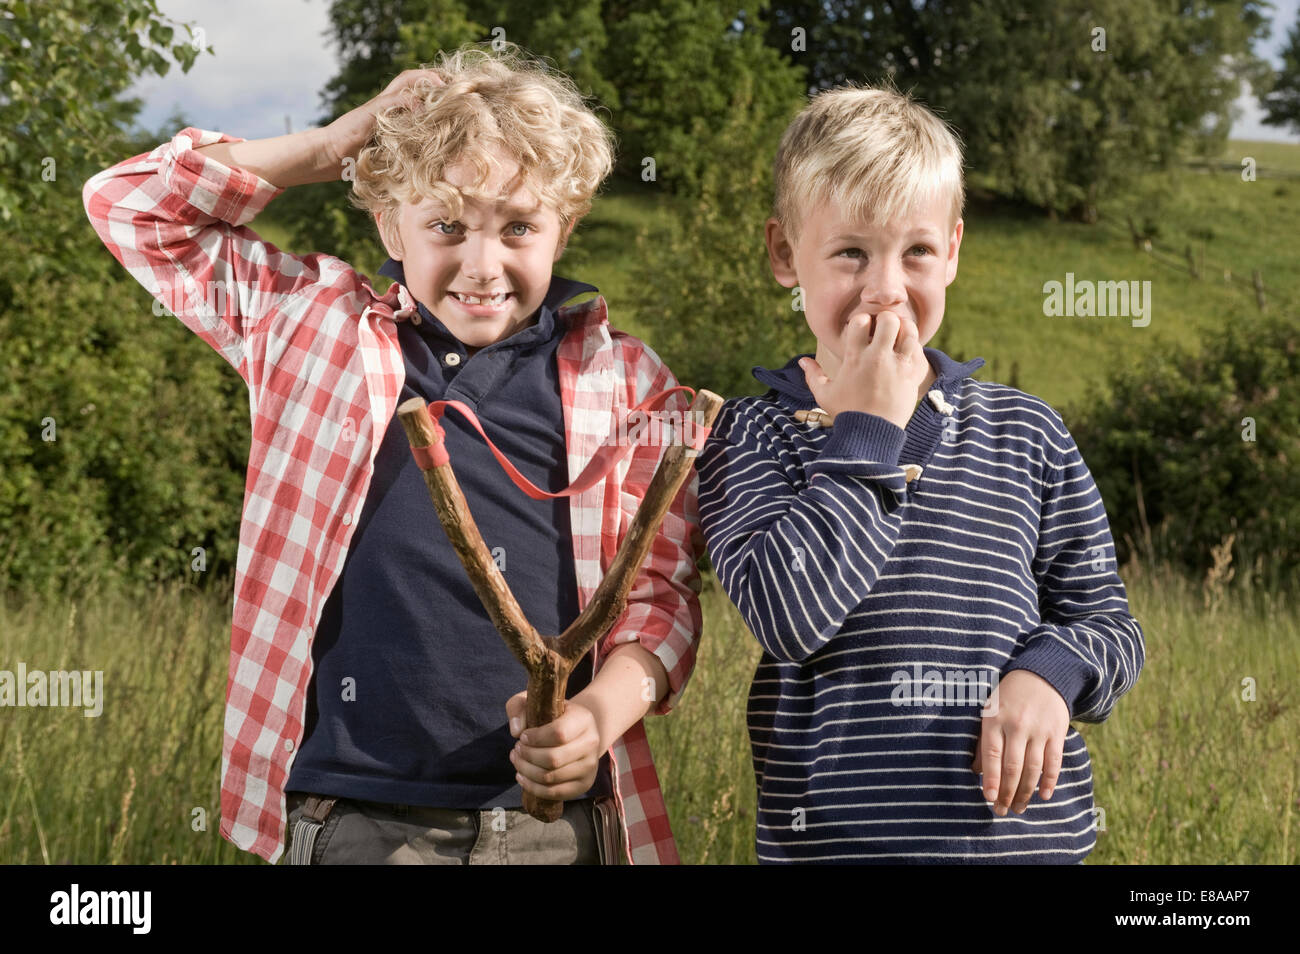 Young boys slingshot problem accident trouble - Stock Image